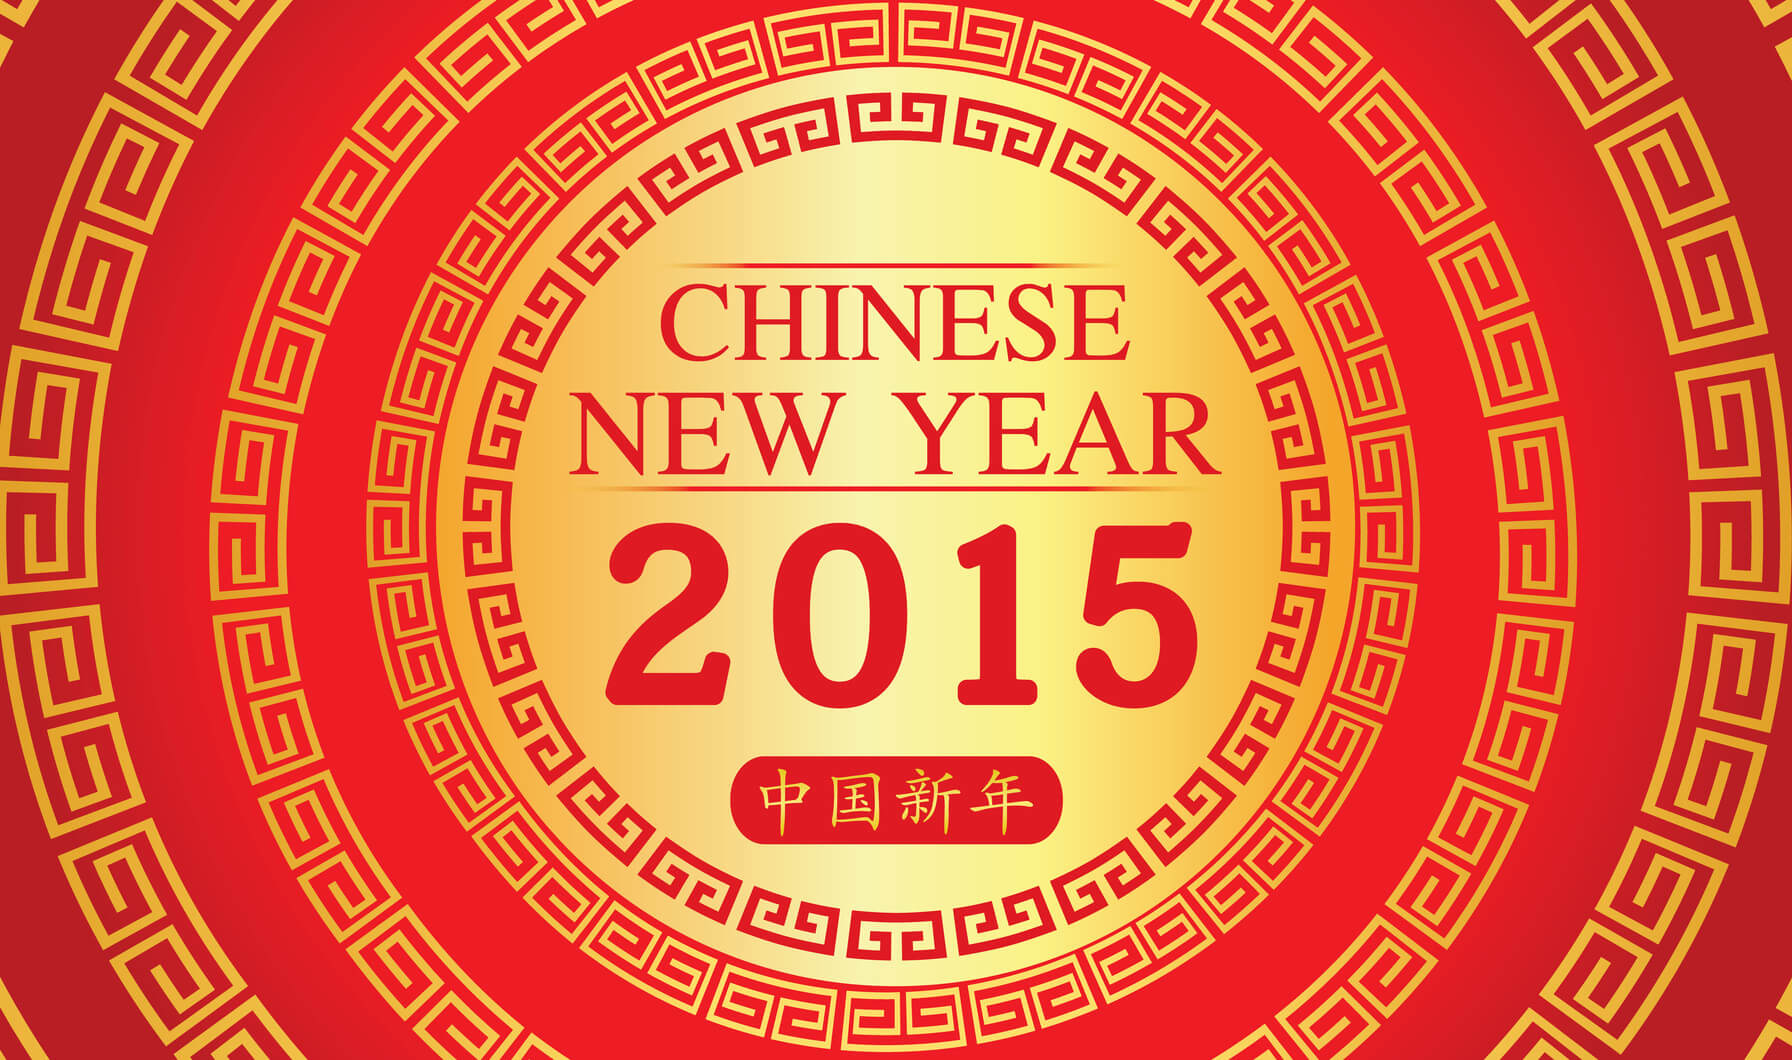 Chinese New Year Sale: Enjoy Discounts While They Last!